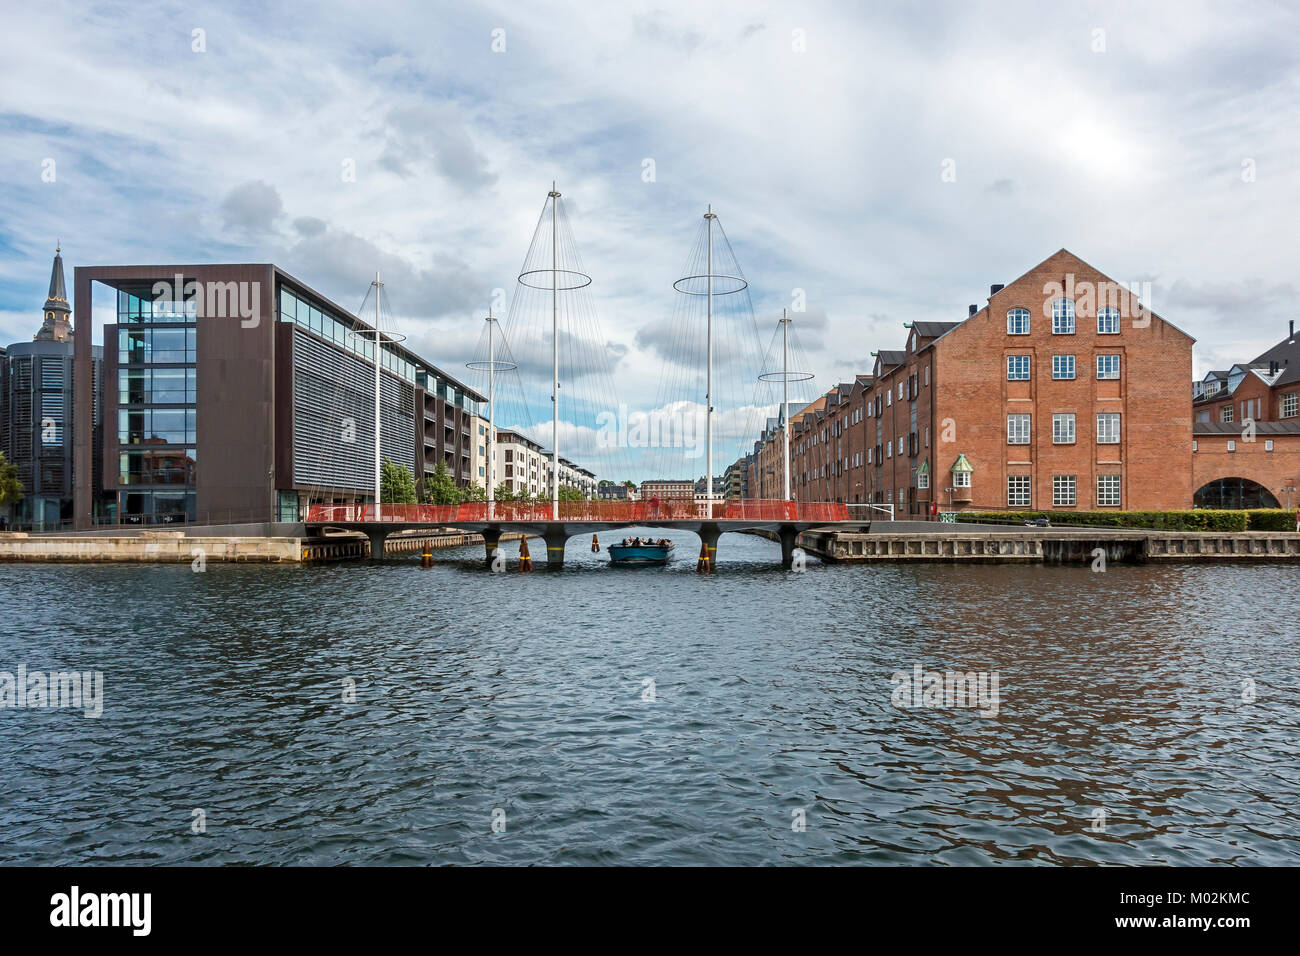 Cirkel-broen (Circle Bridge) at the mouth of Christianshavns Kanal in the harbour of Copenhagen Denmark UK with - Stock Image